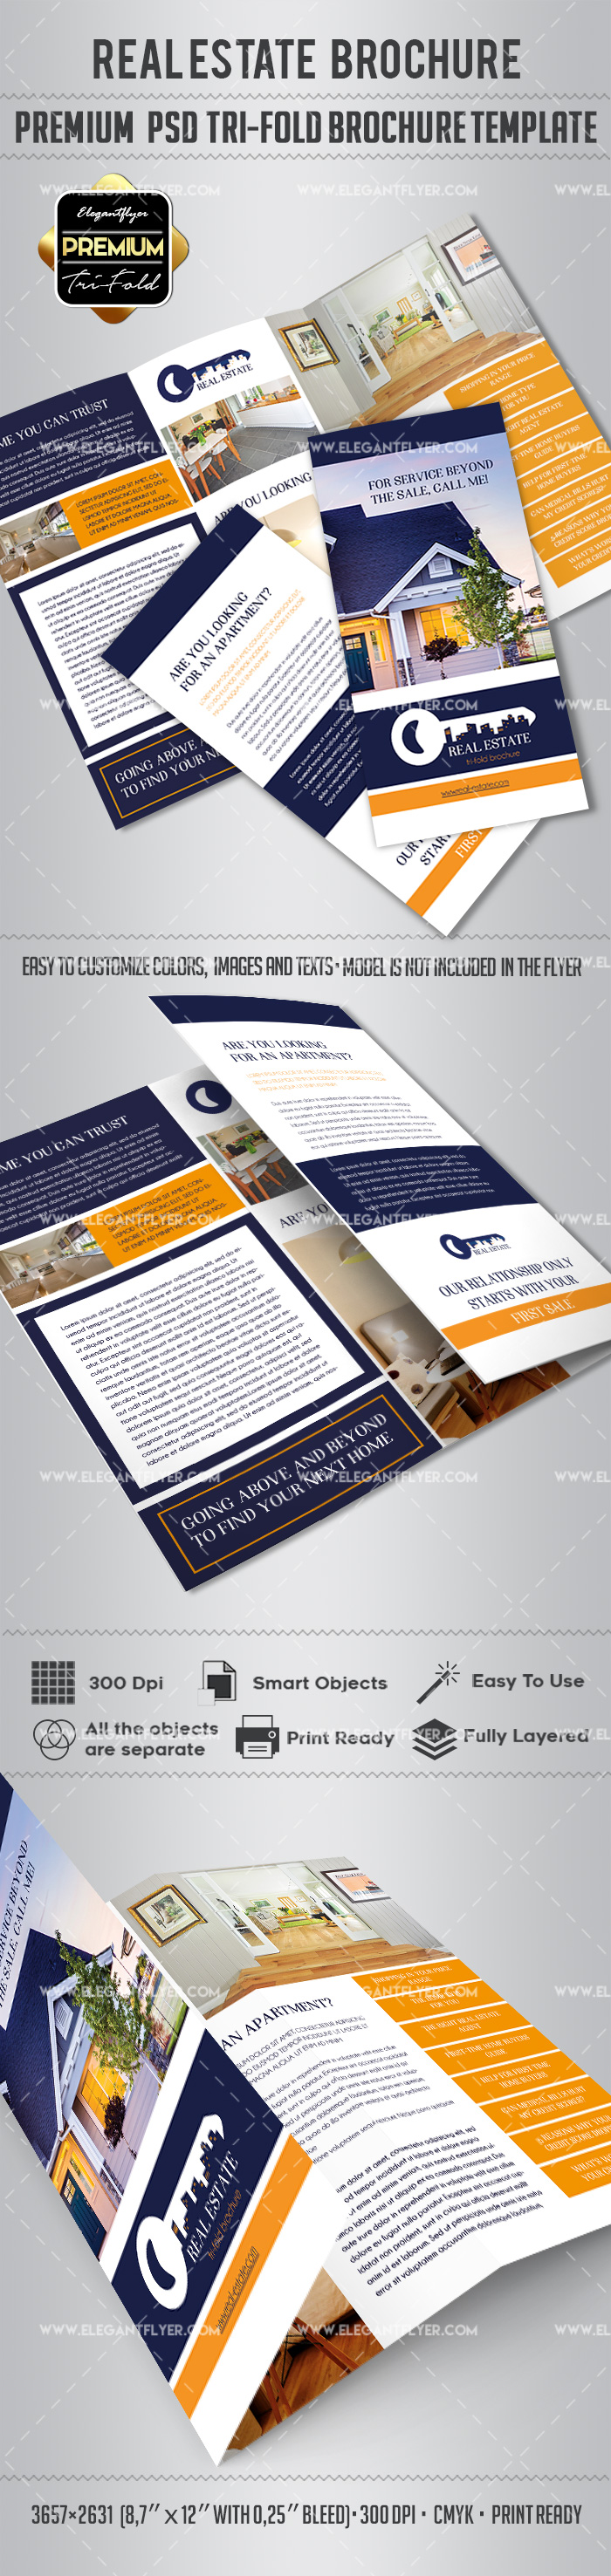 Real Estates Agency PSD Template